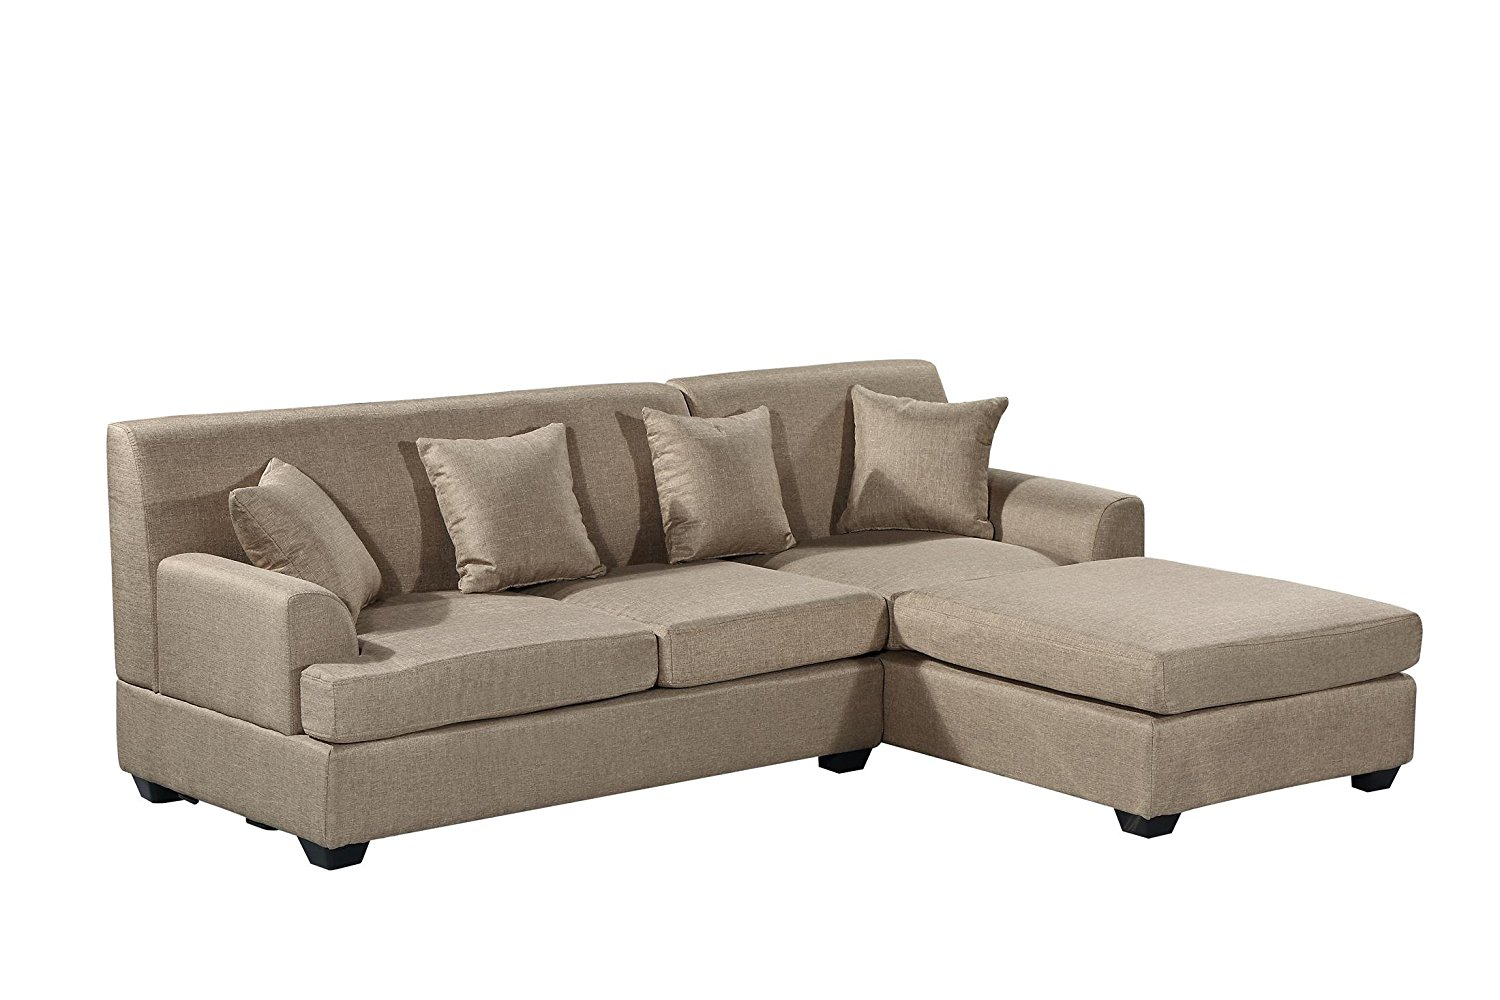 Large Tan Quality Sectional 92 X 65 X 32 5 Rochester